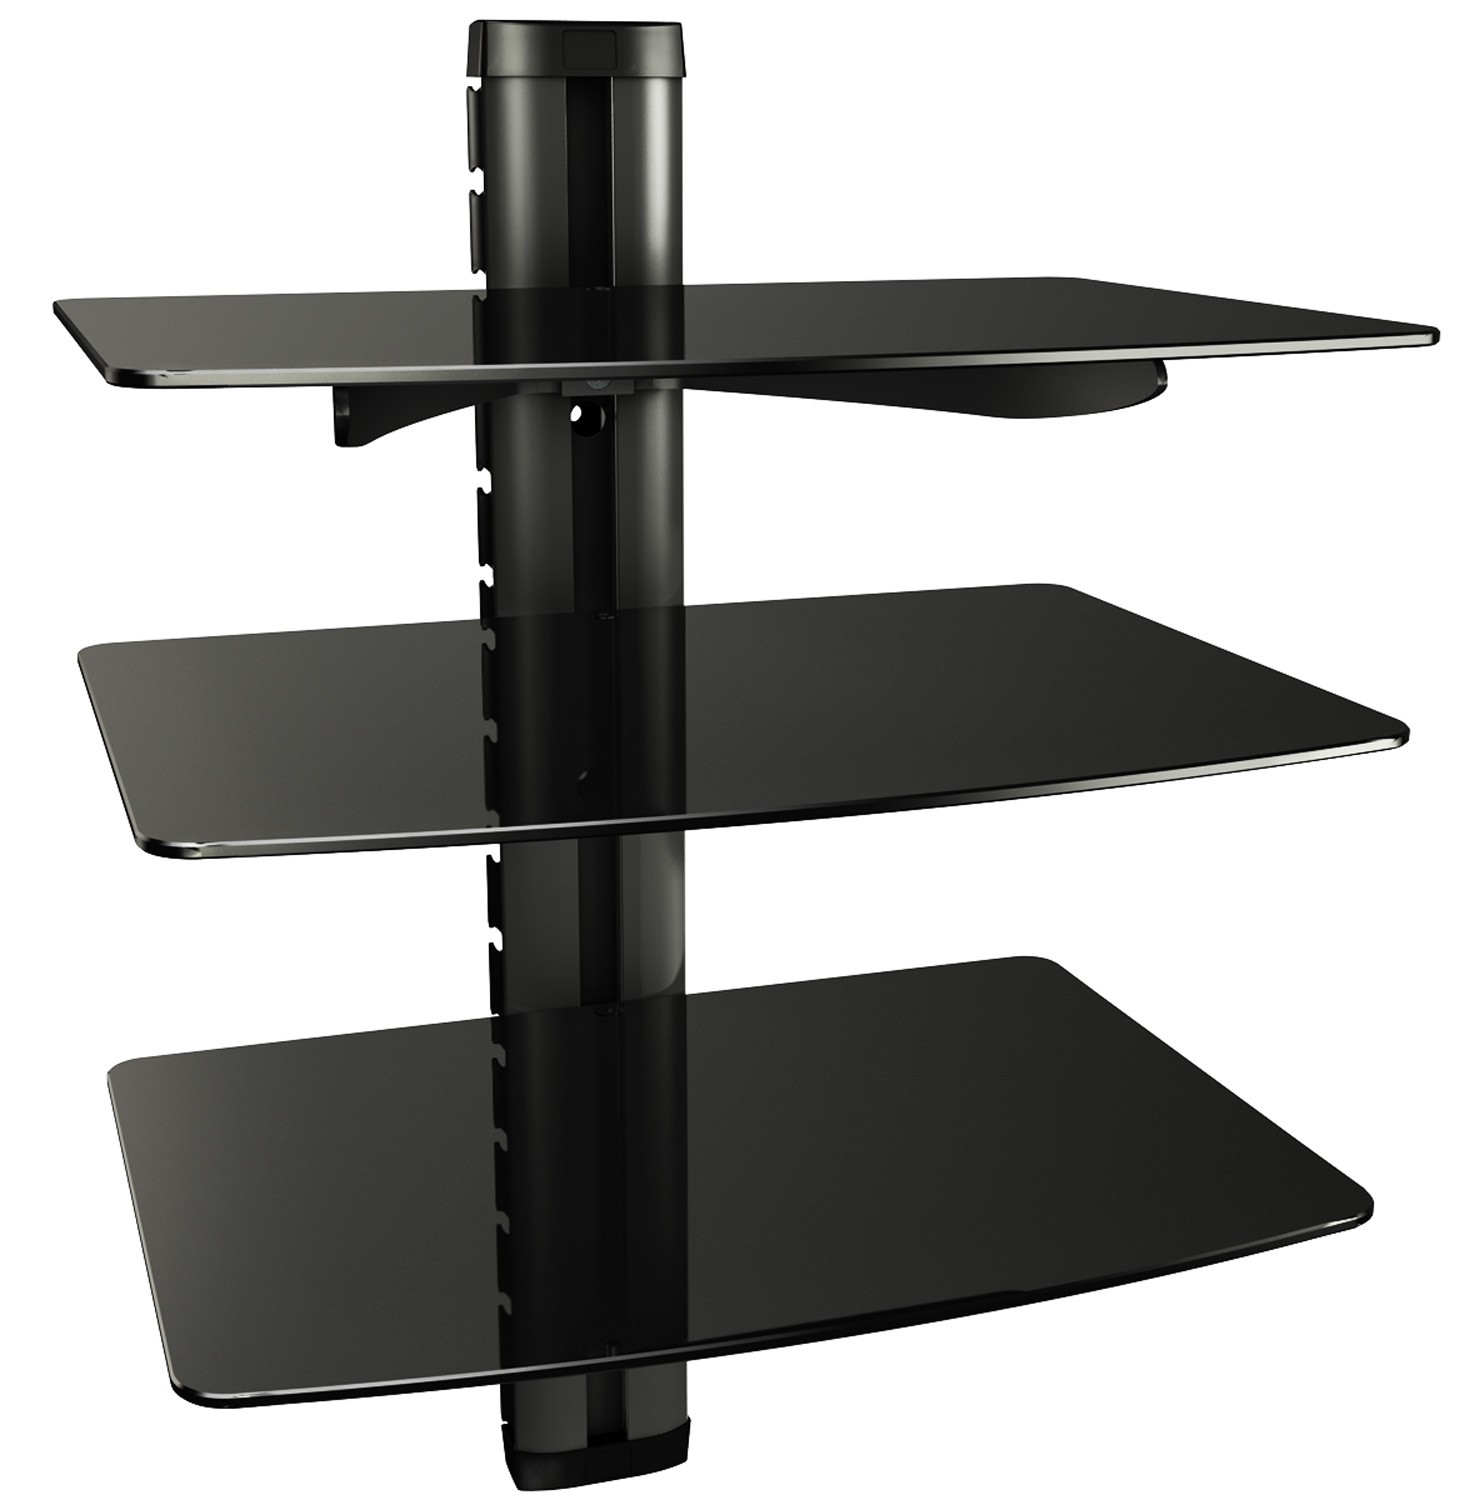 glas regal hifi wandhalterung dvd glasregal wand board xl 11175. Black Bedroom Furniture Sets. Home Design Ideas